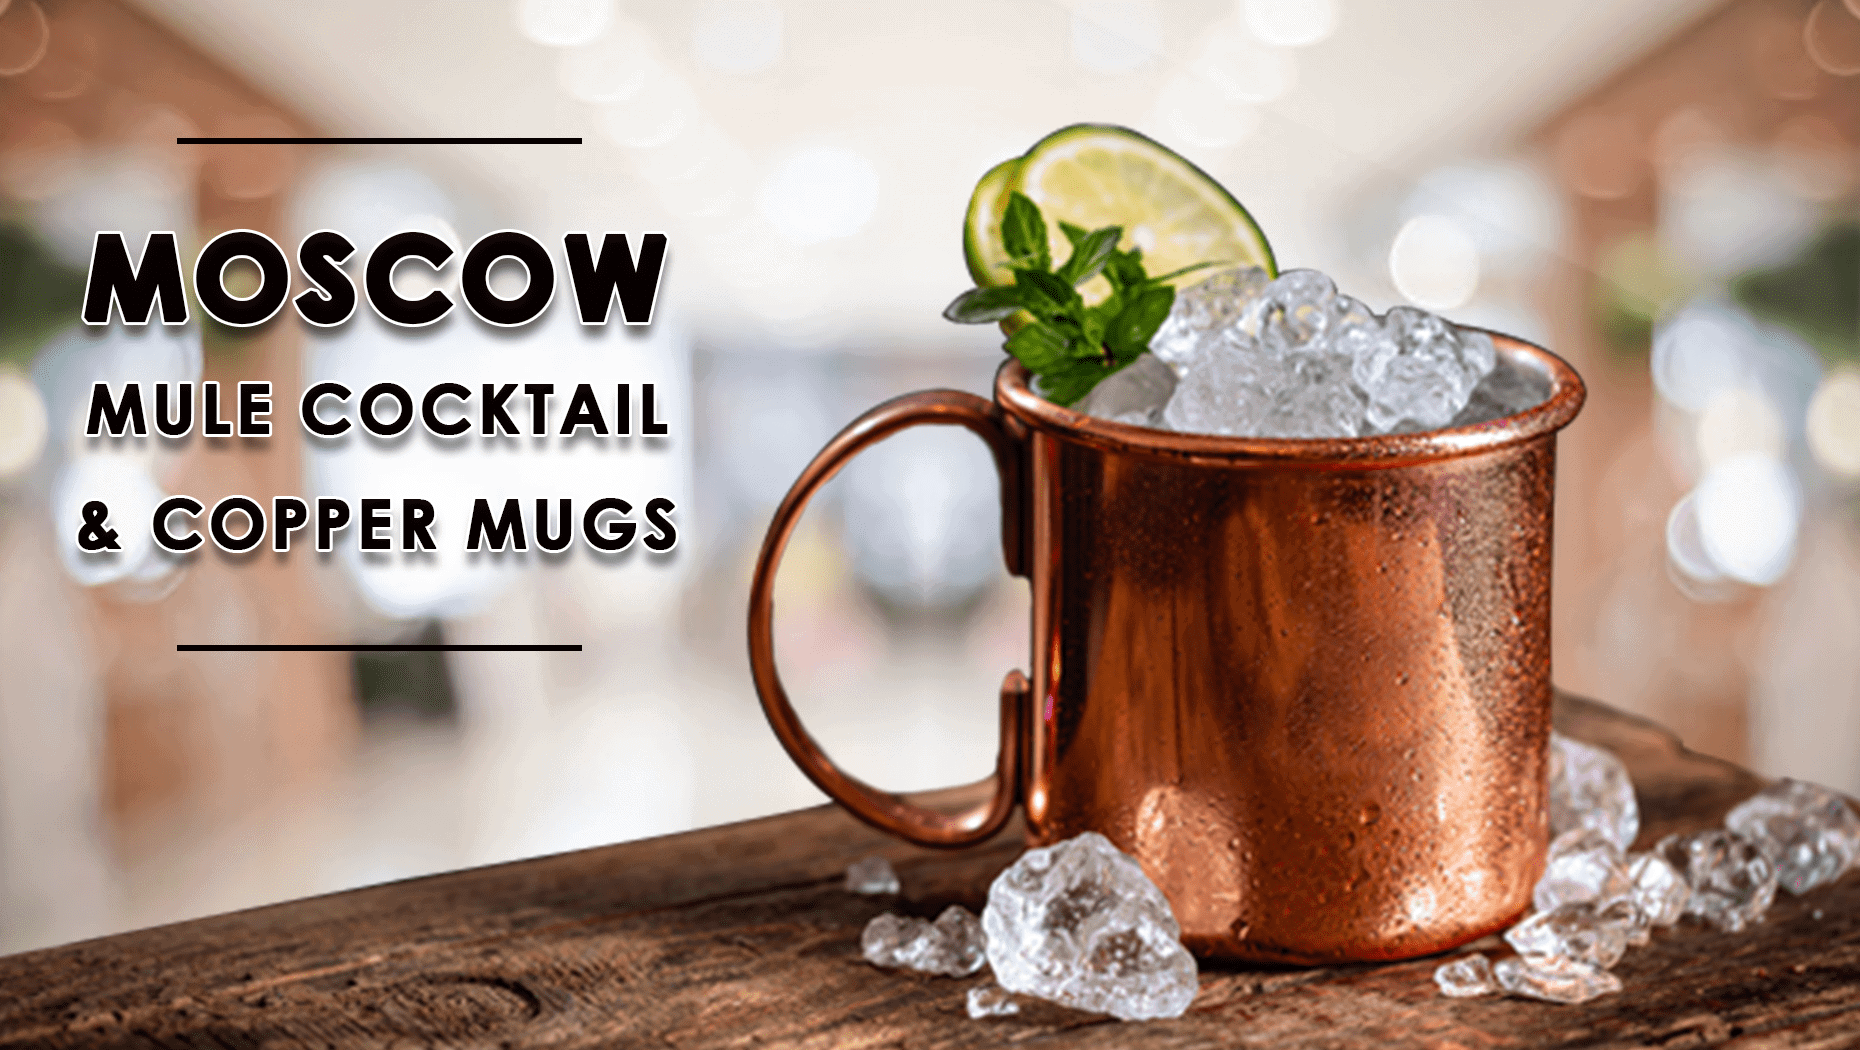 Moscow Mule Cocktail and Copper Mugs